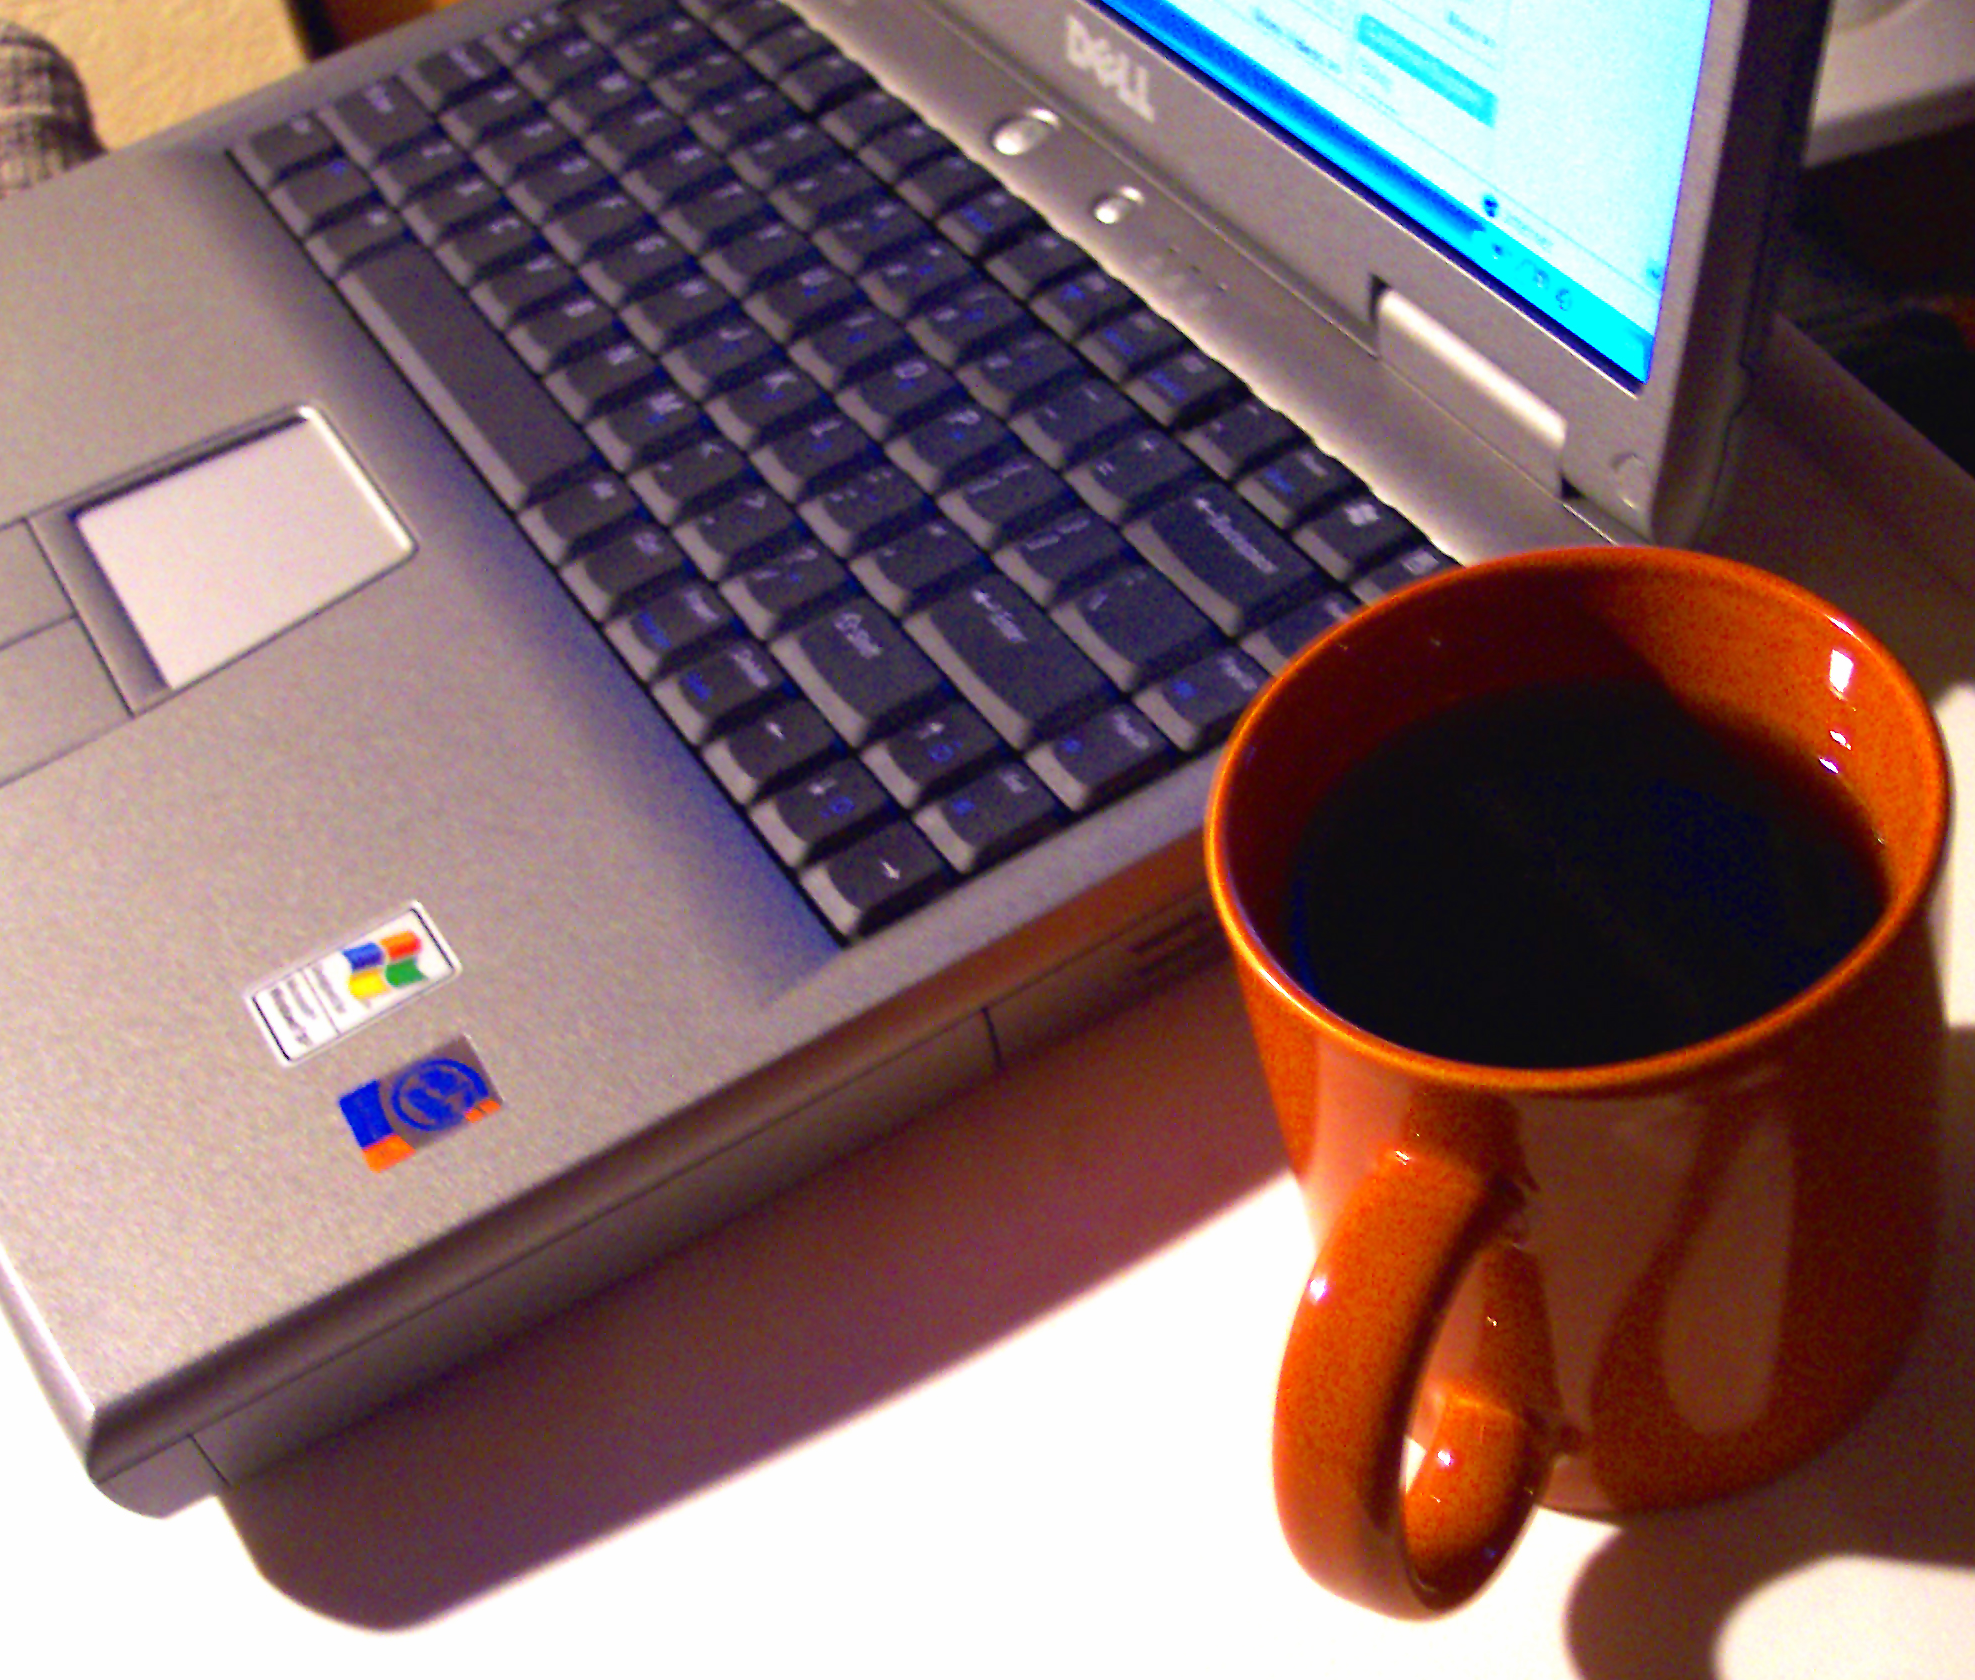 05-LaptopandCoffee.png